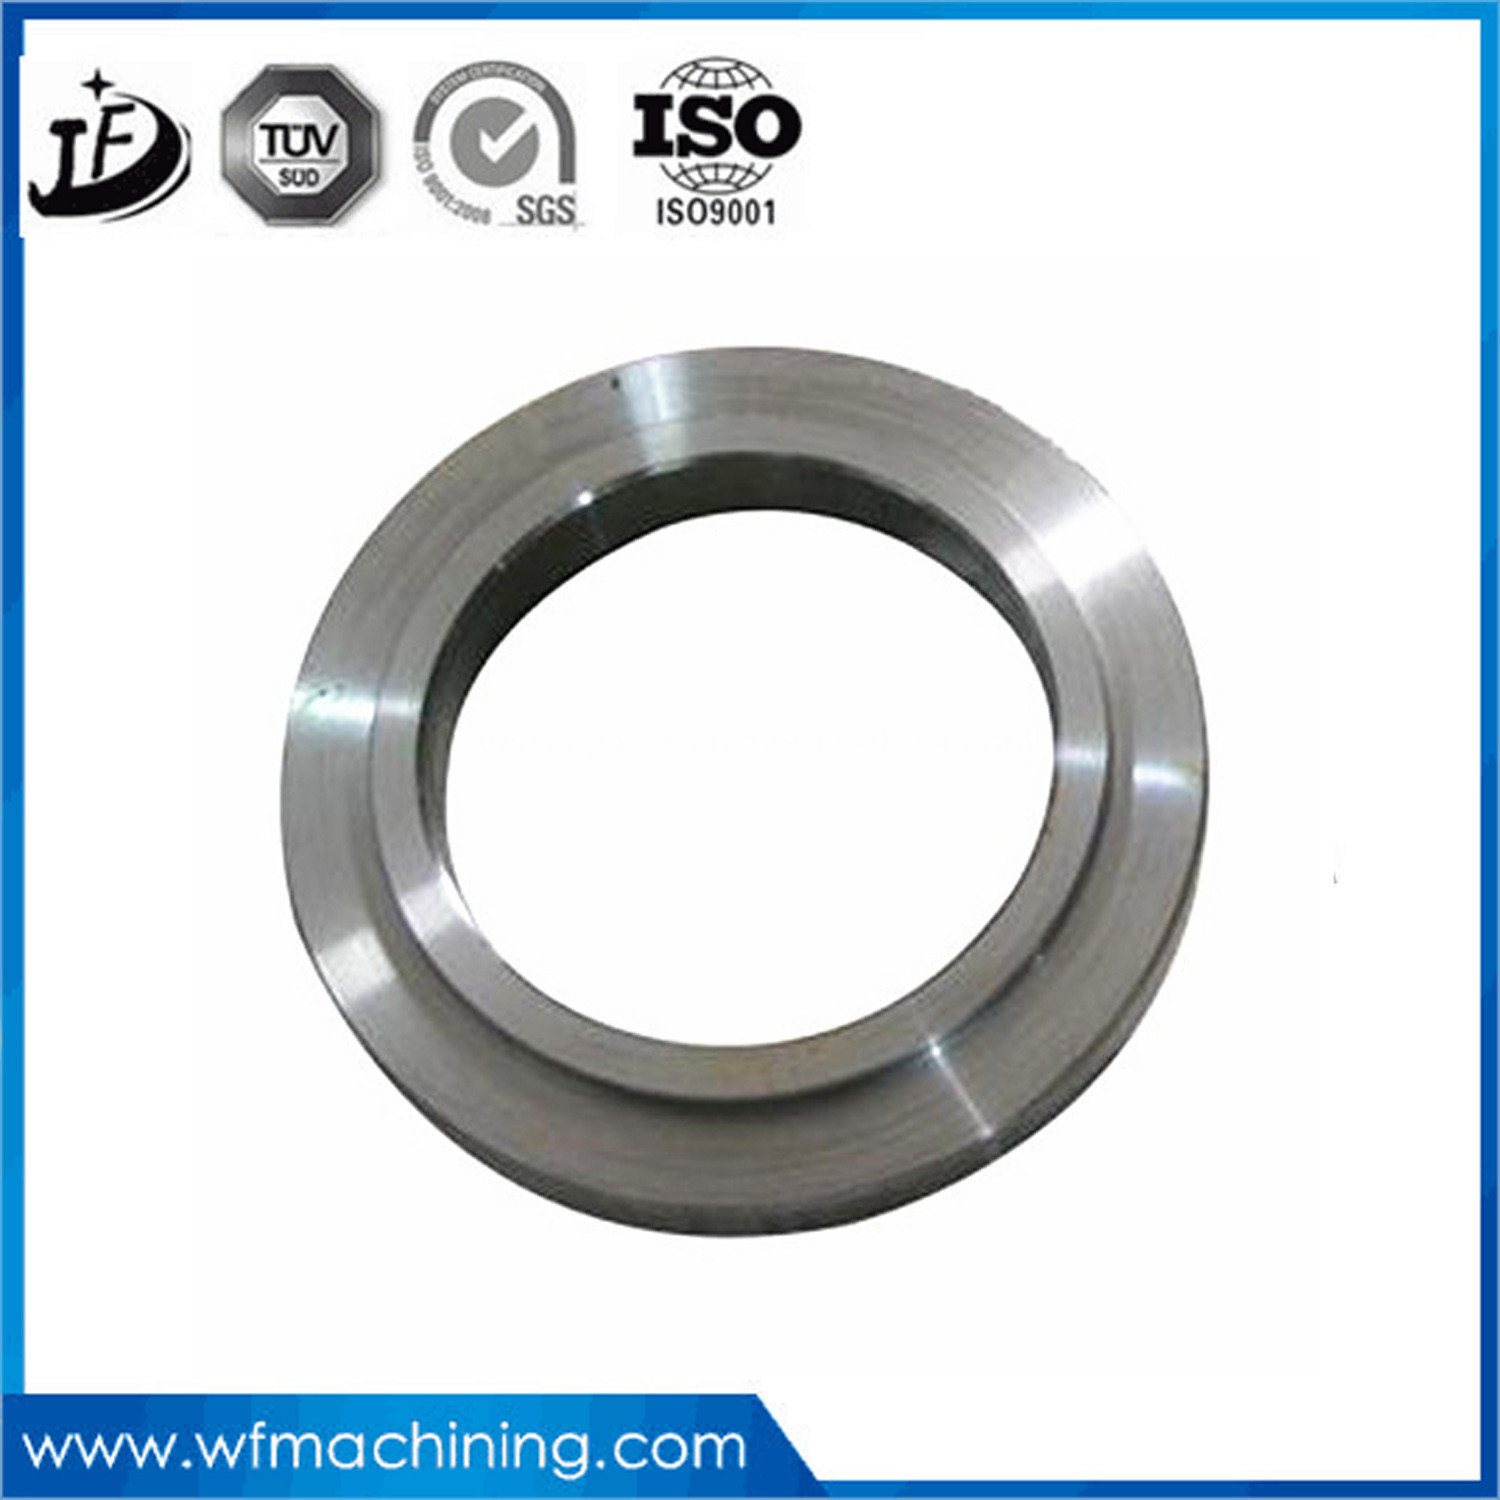 Customized Good Quality Seat Ring CNC Machining and Turning, Milling, Grinding, Drilling Services